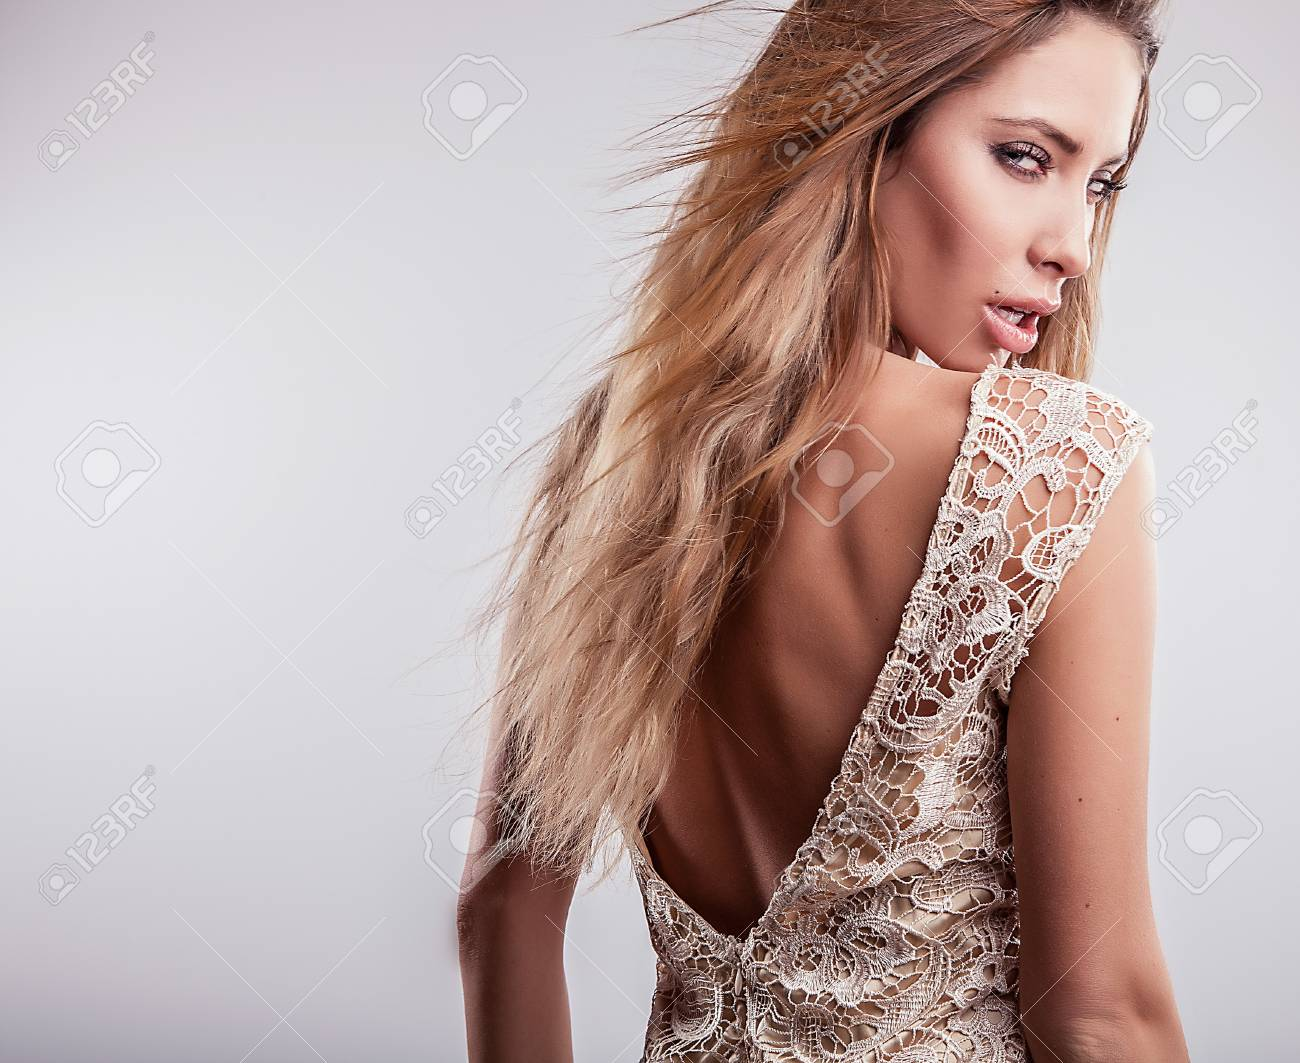 Young sensual model girl pose in studio Stock Photo - 17130095